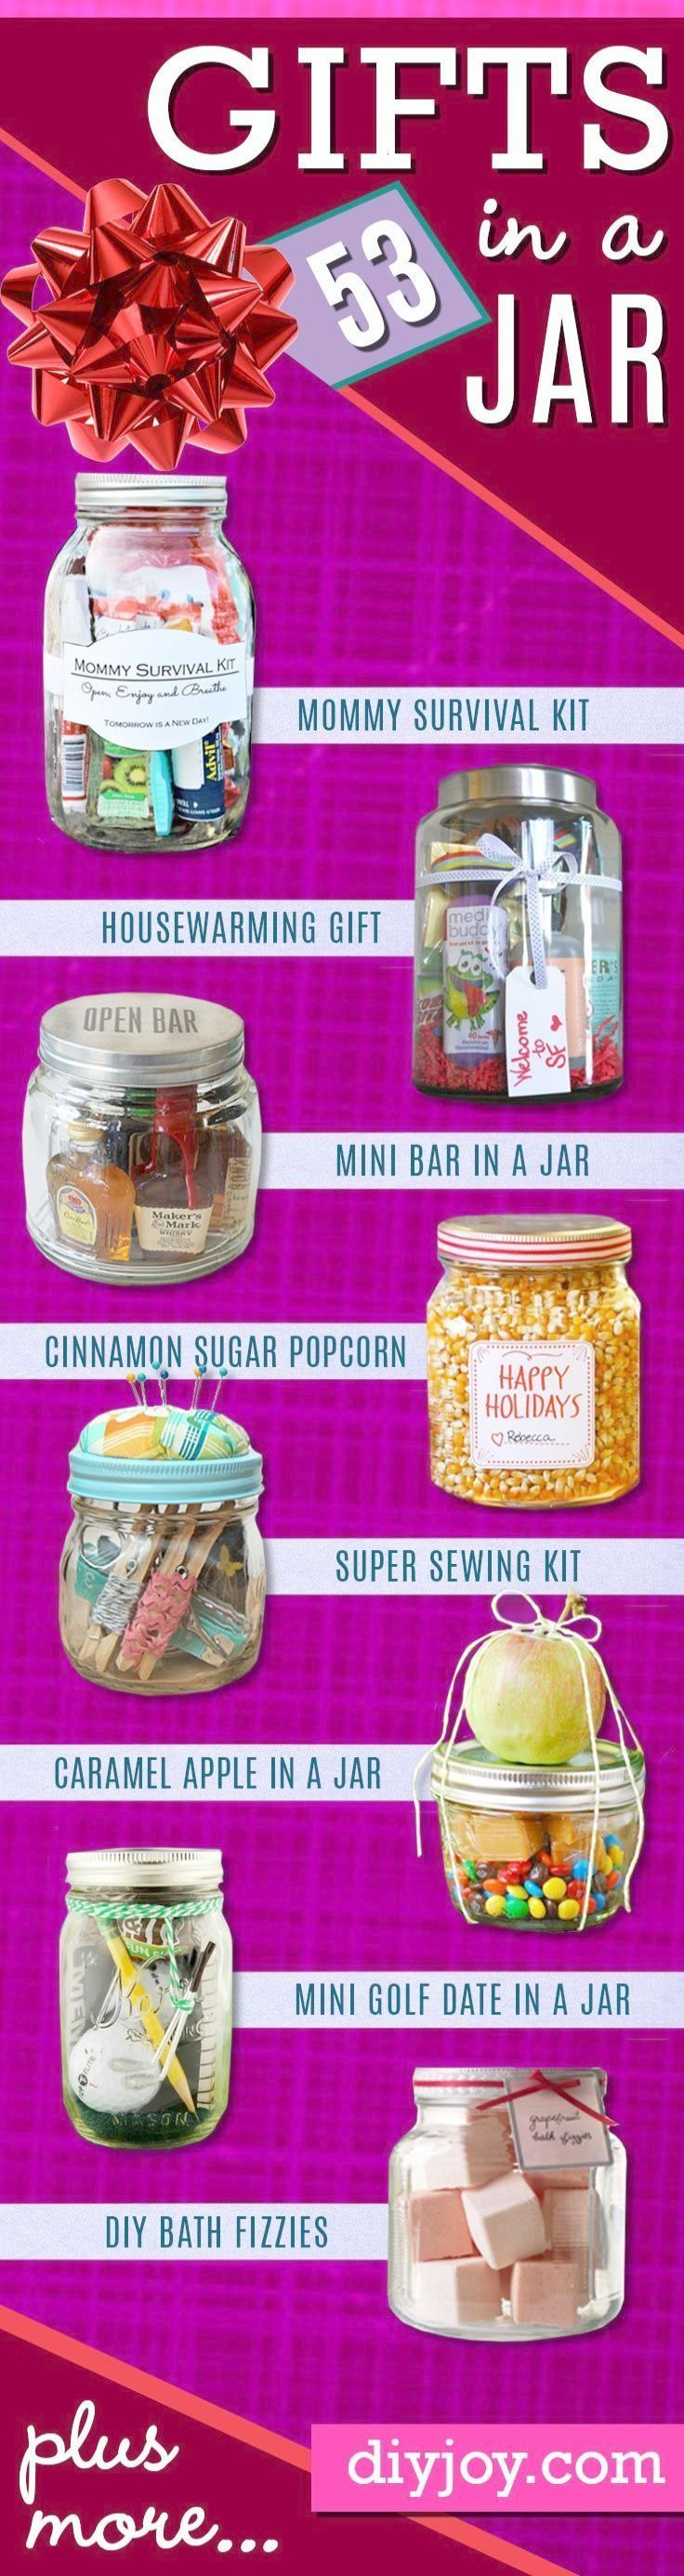 Best Homemade Diy Gifts In A Jar - Best Mason